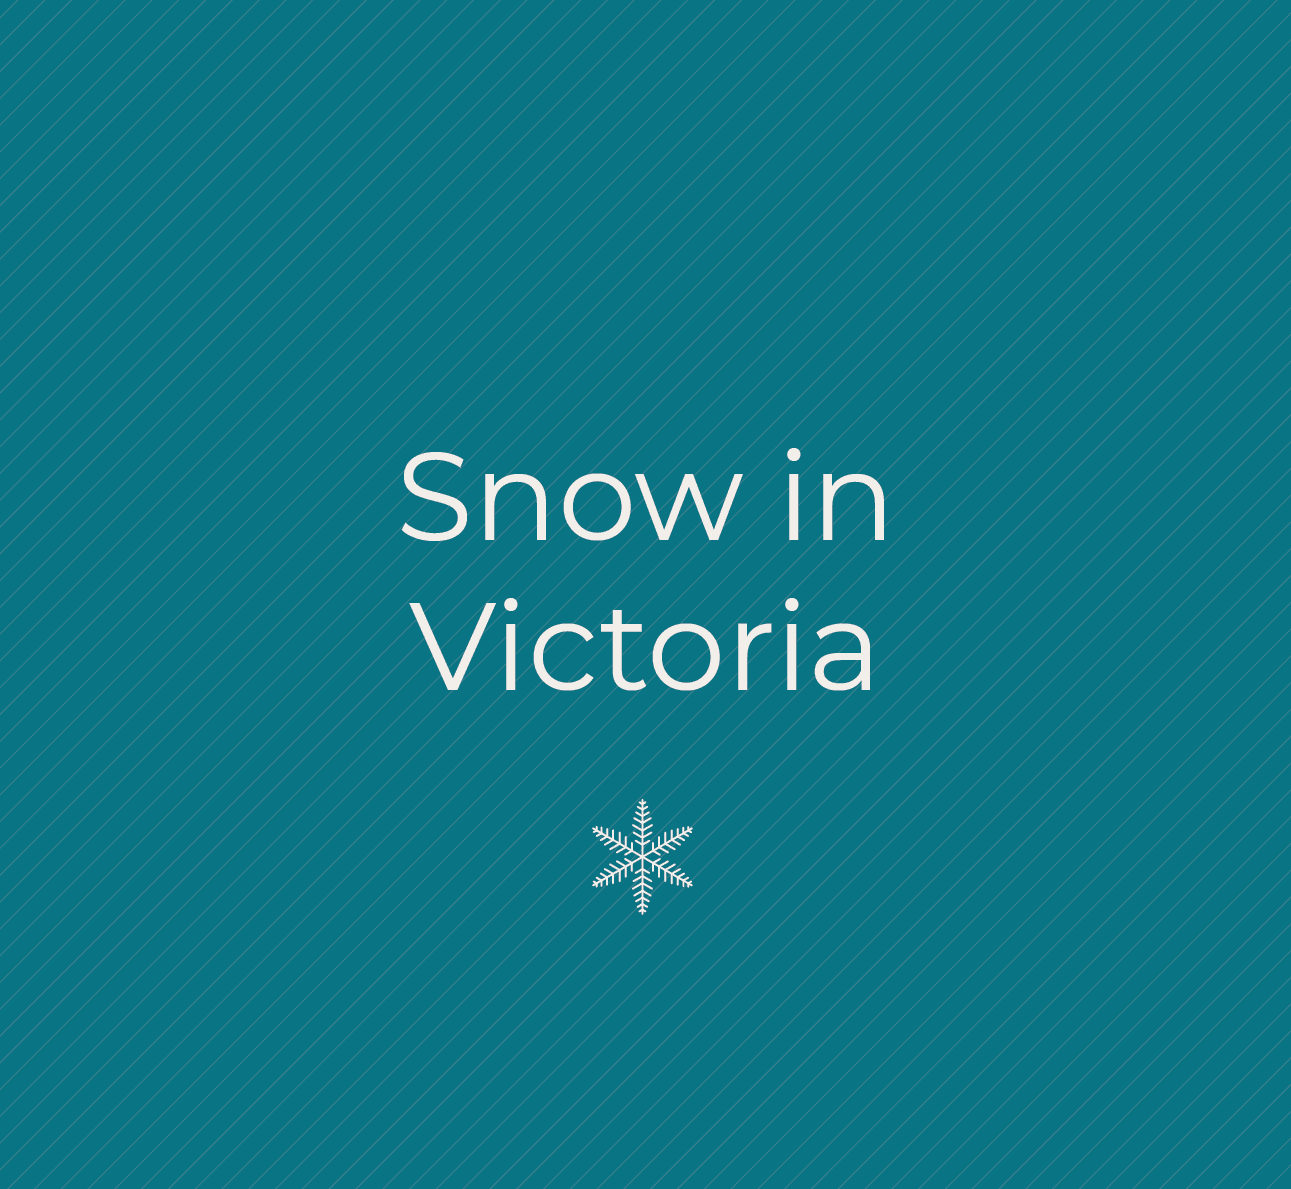 Snow in Victoria text with a snowflake illustration